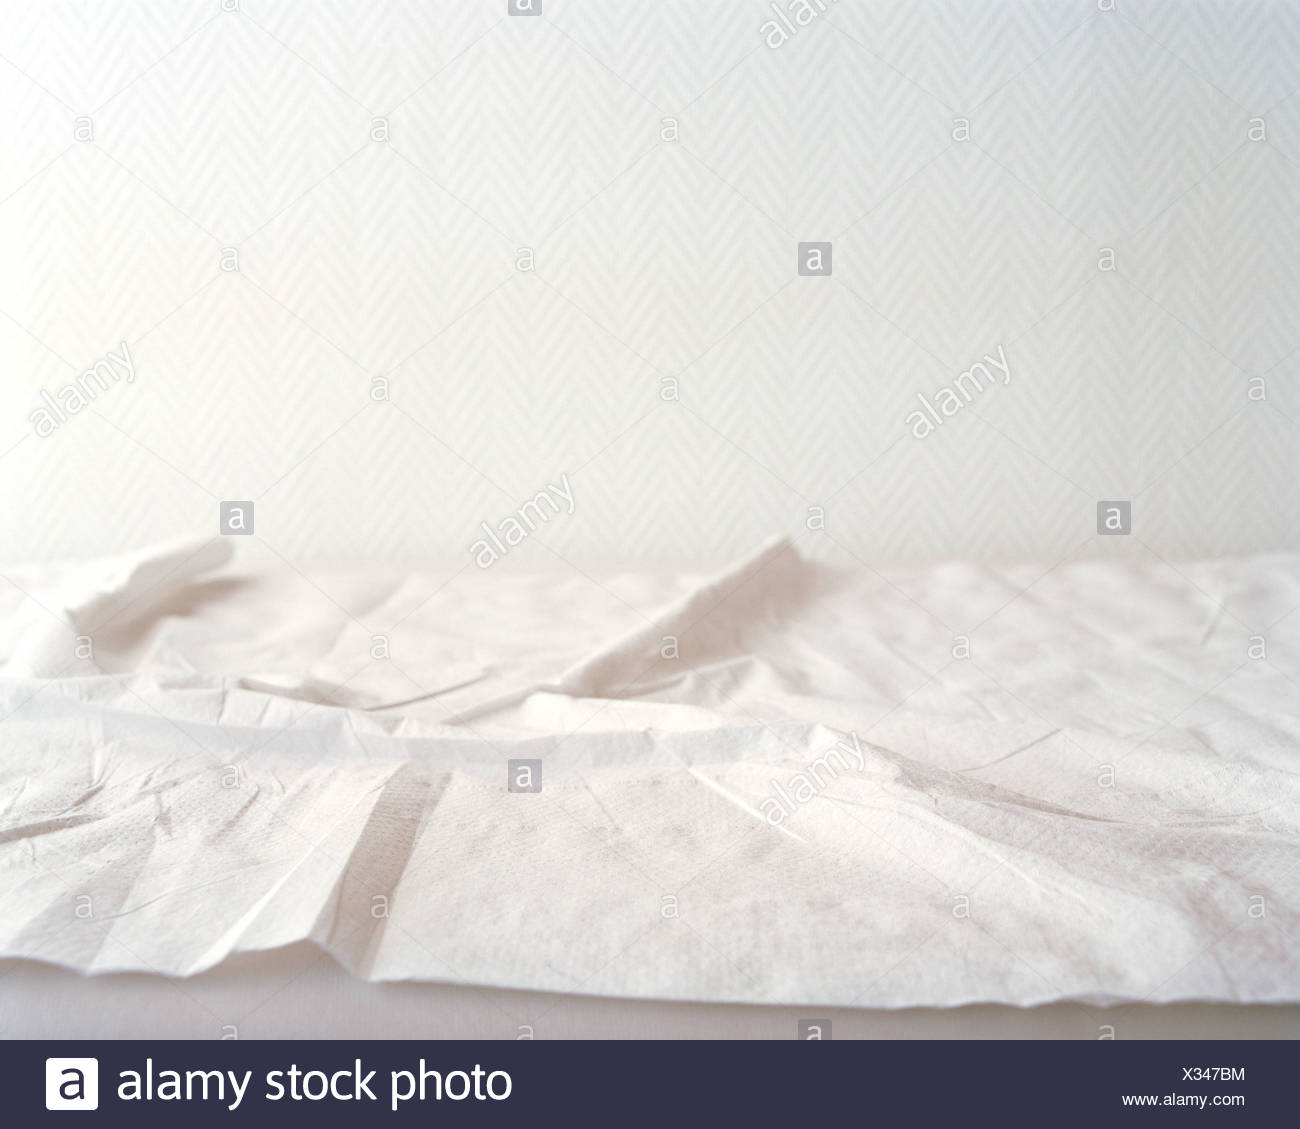 Crumpled sheets on hospital bed - Stock Image